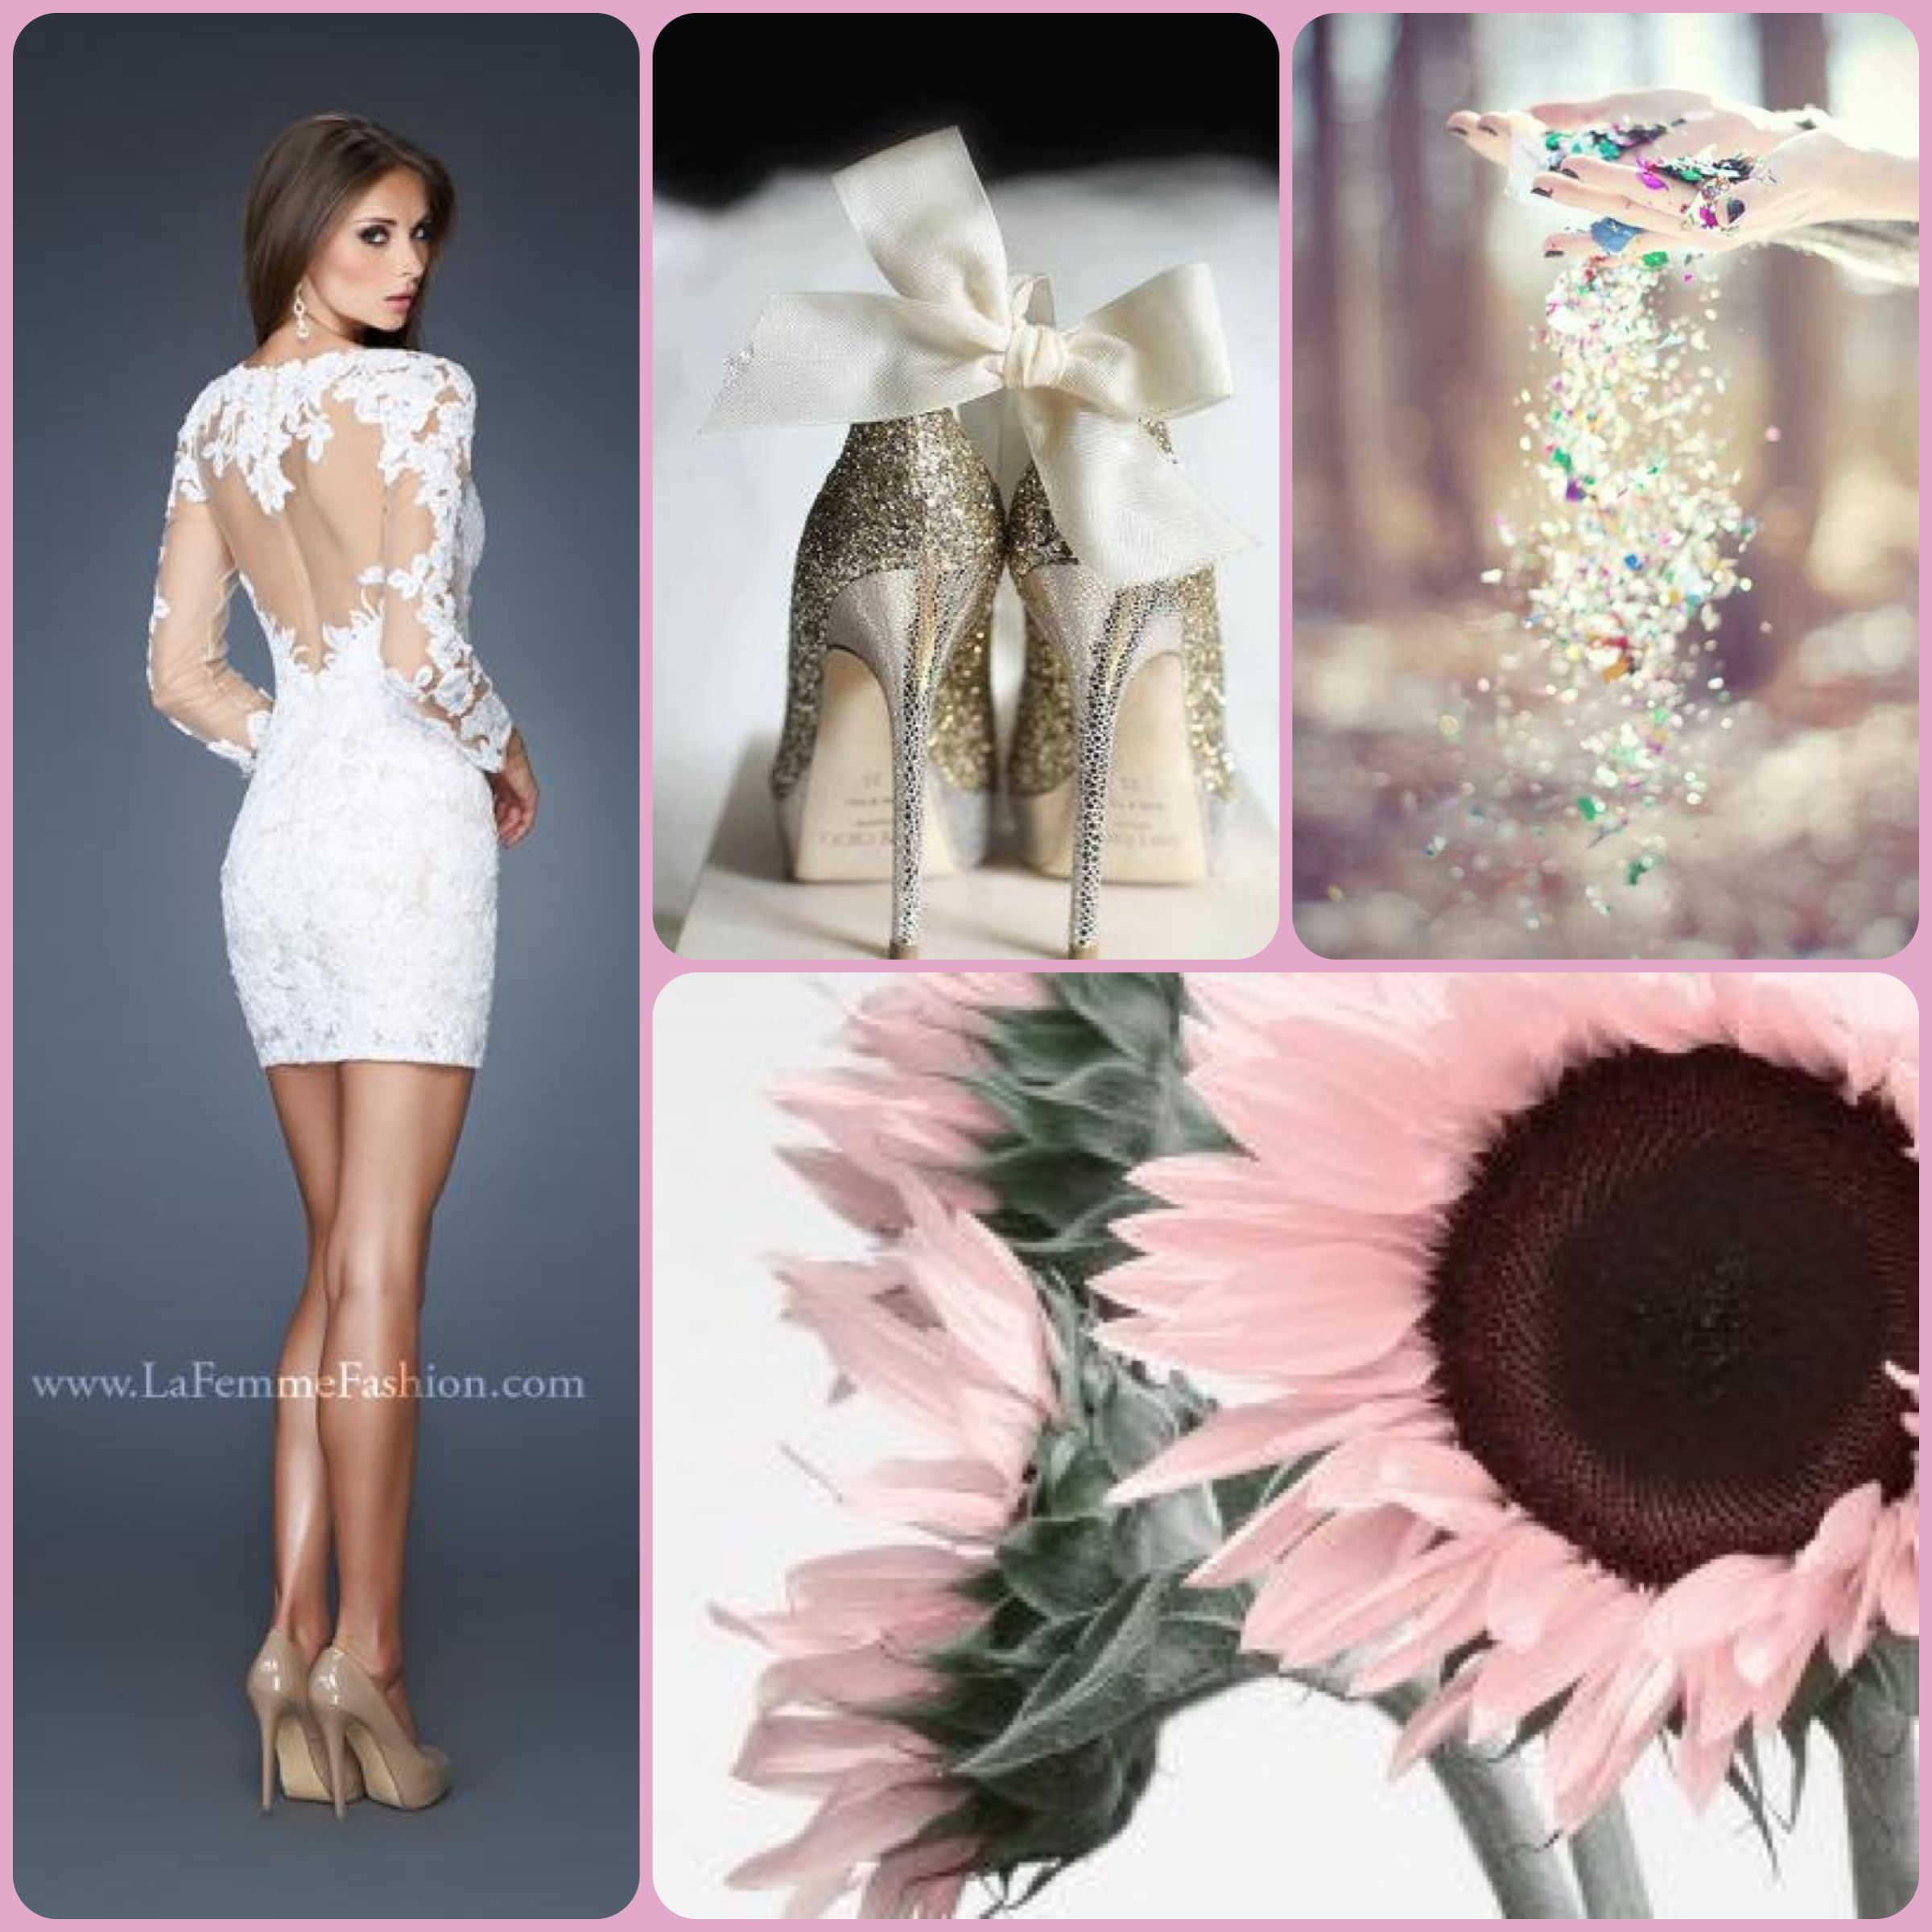 La femme style white dress short white dress white prom